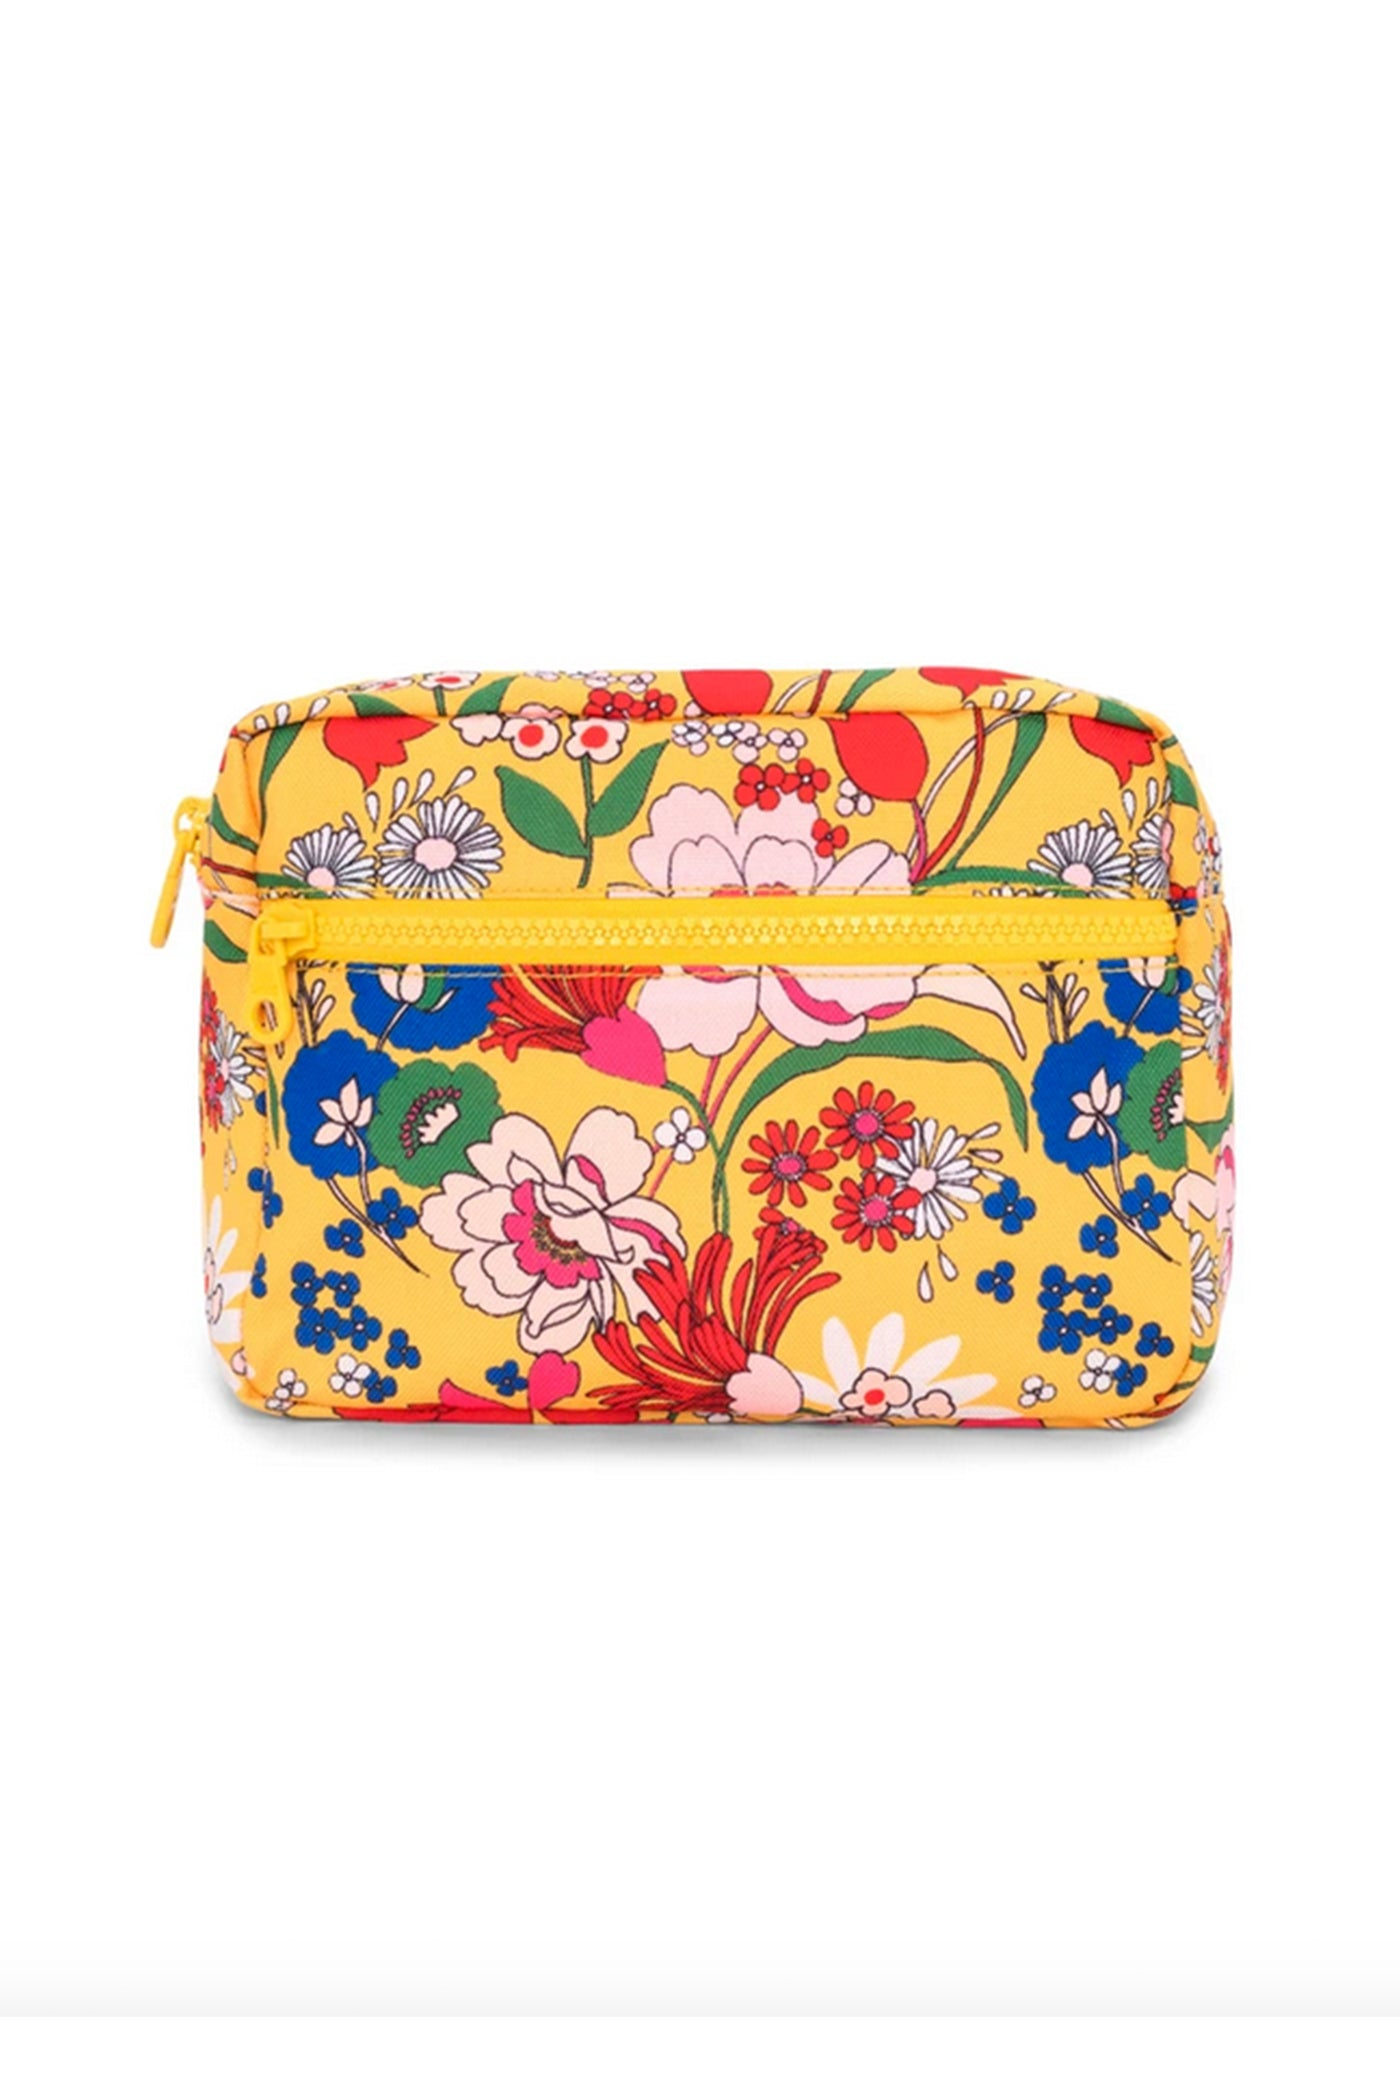 Superbloom Cosmetic Bag by ban.do